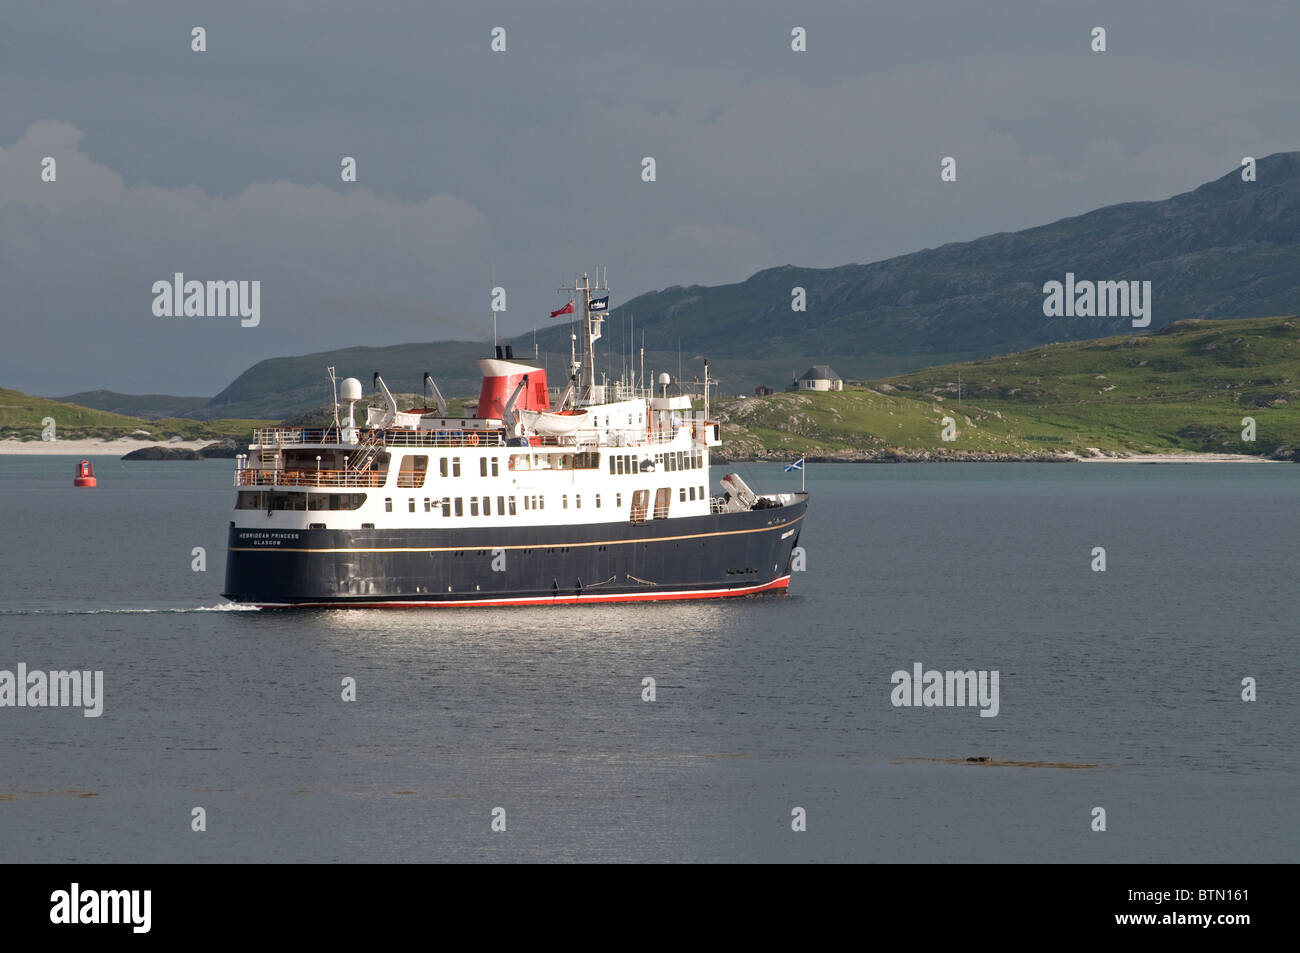 The Small Luxury Cruise ship arriving in Castlebay Isle of Barra, Outer Hebrides, Scotland. SCO 6614 - Stock Image